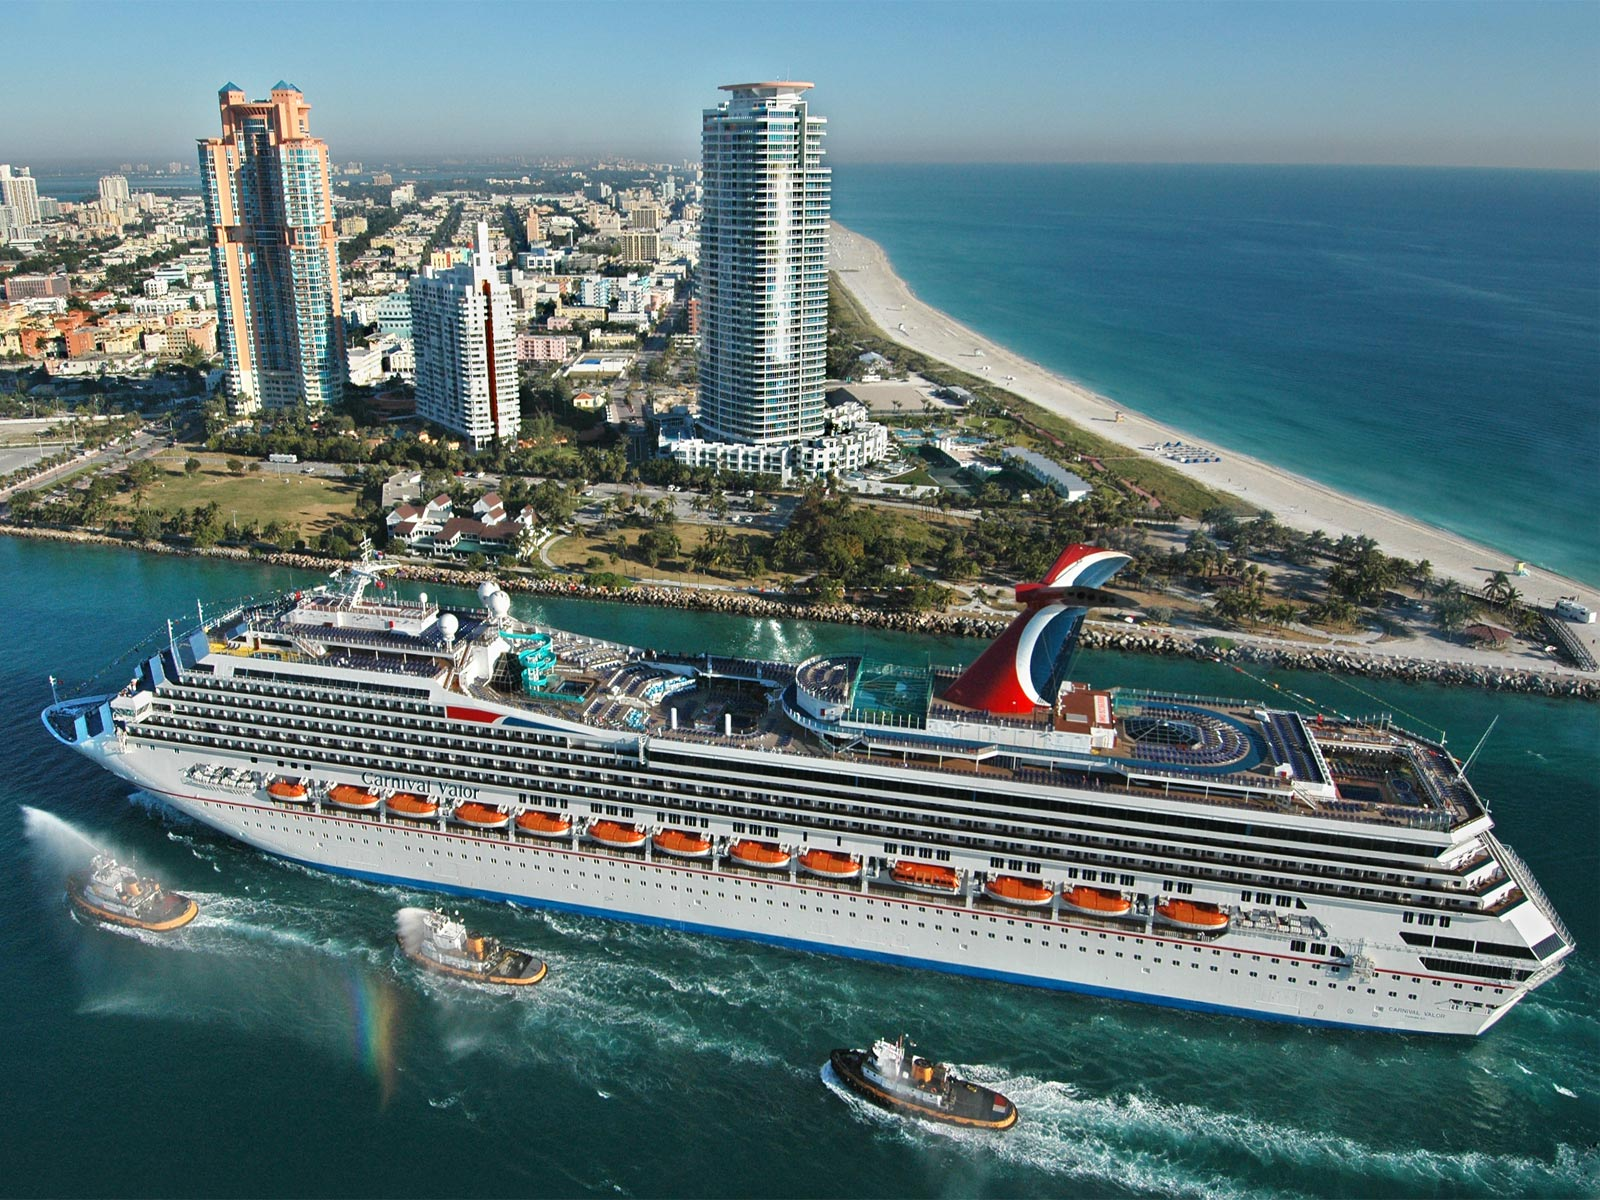 Miami Cruise Shipping novas tendencias em cruises e em Miami Le 1600x1200